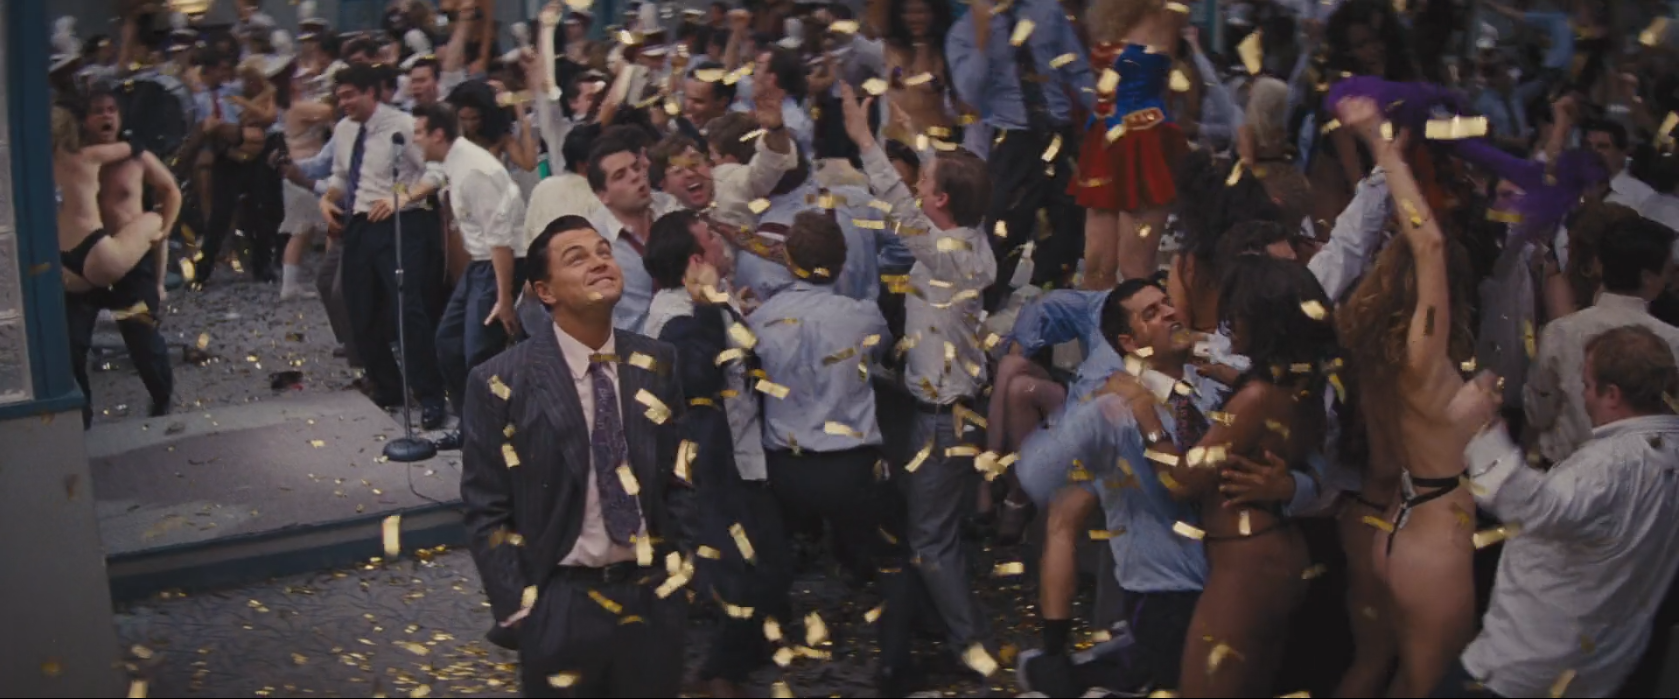 wolf-of-wall-street-3.png (1679×699)